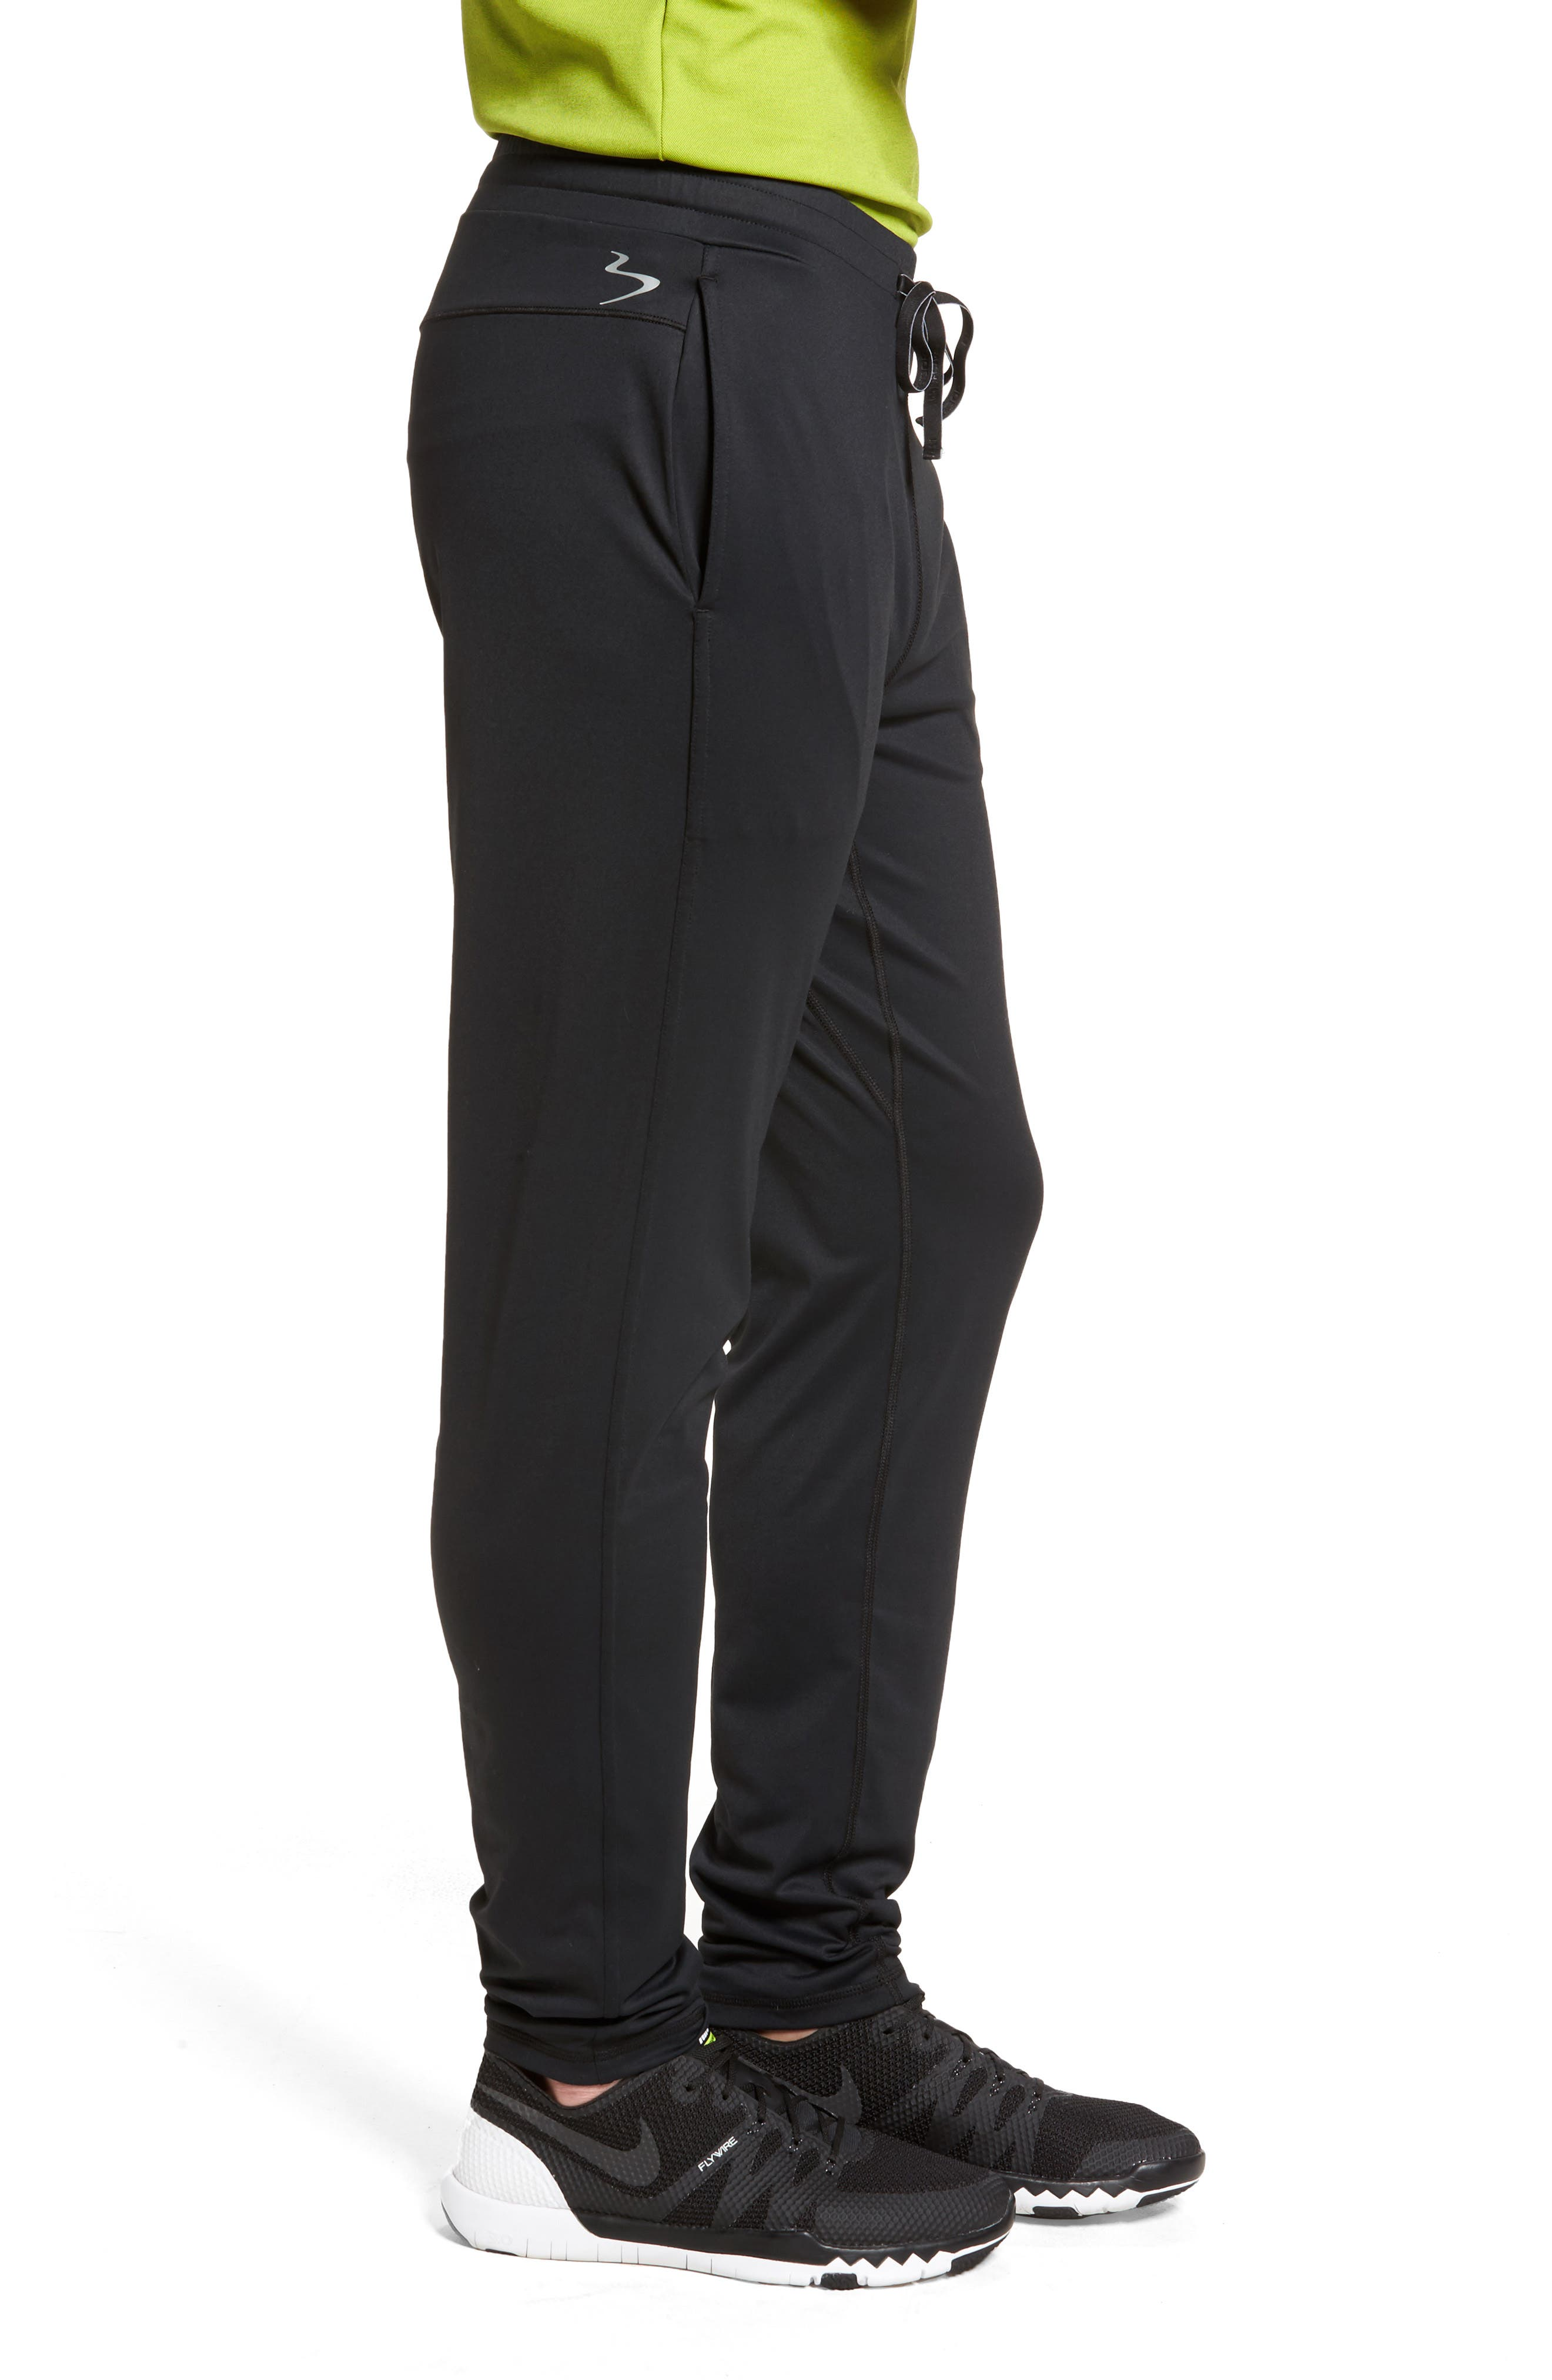 Go-To Slim Athletic Pants,                             Alternate thumbnail 3, color,                             001